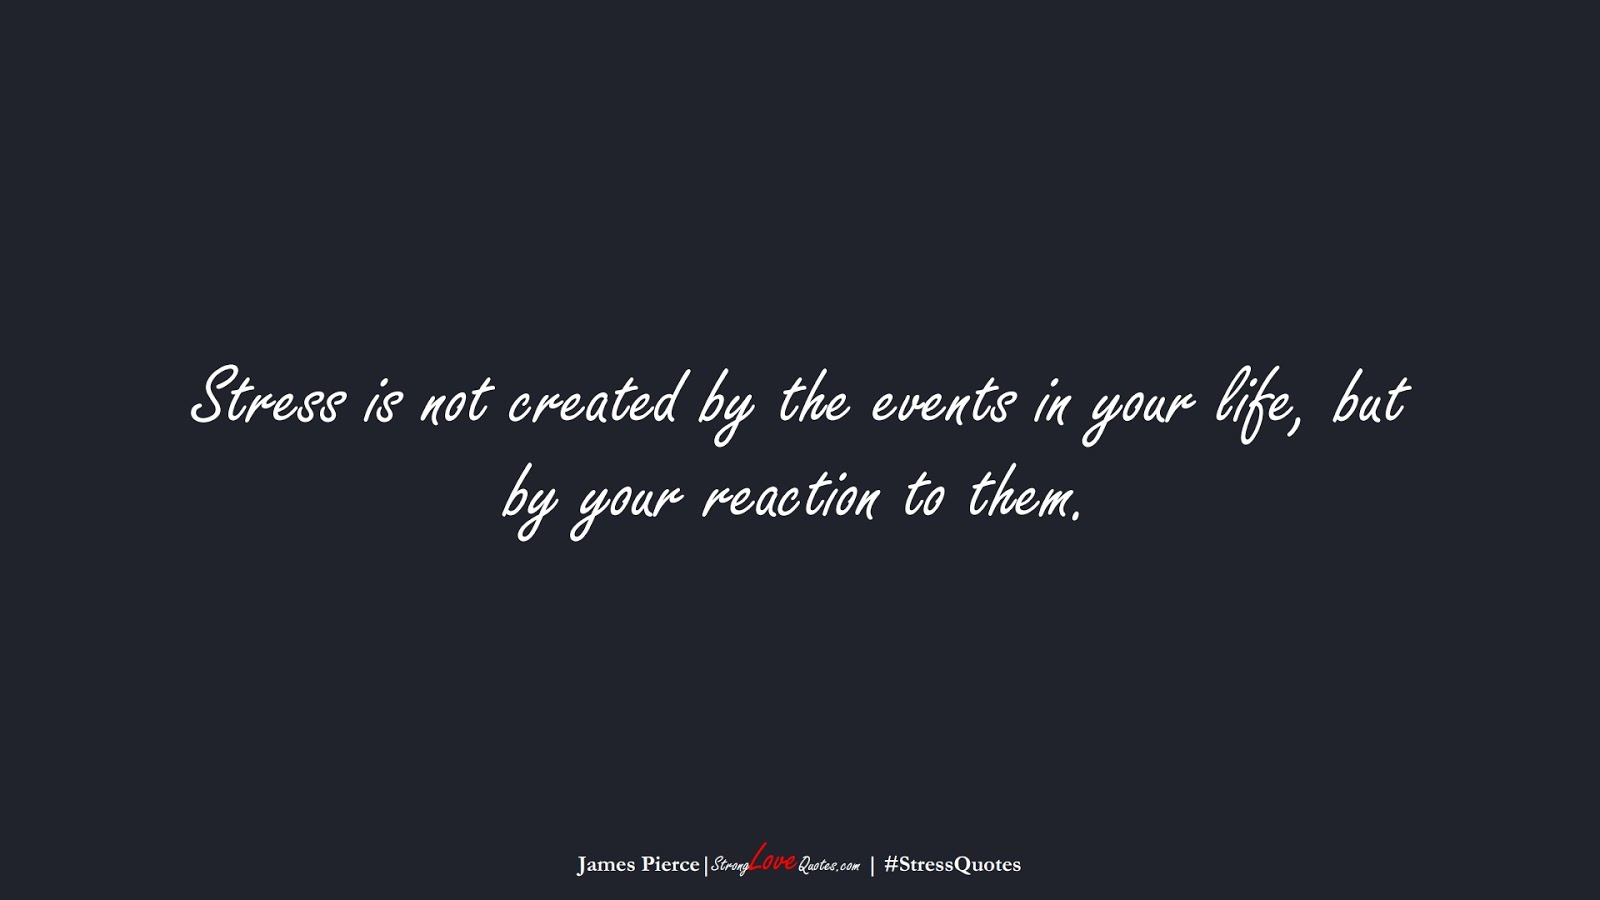 Stress is not created by the events in your life, but by your reaction to them. (James Pierce);  #StressQuotes